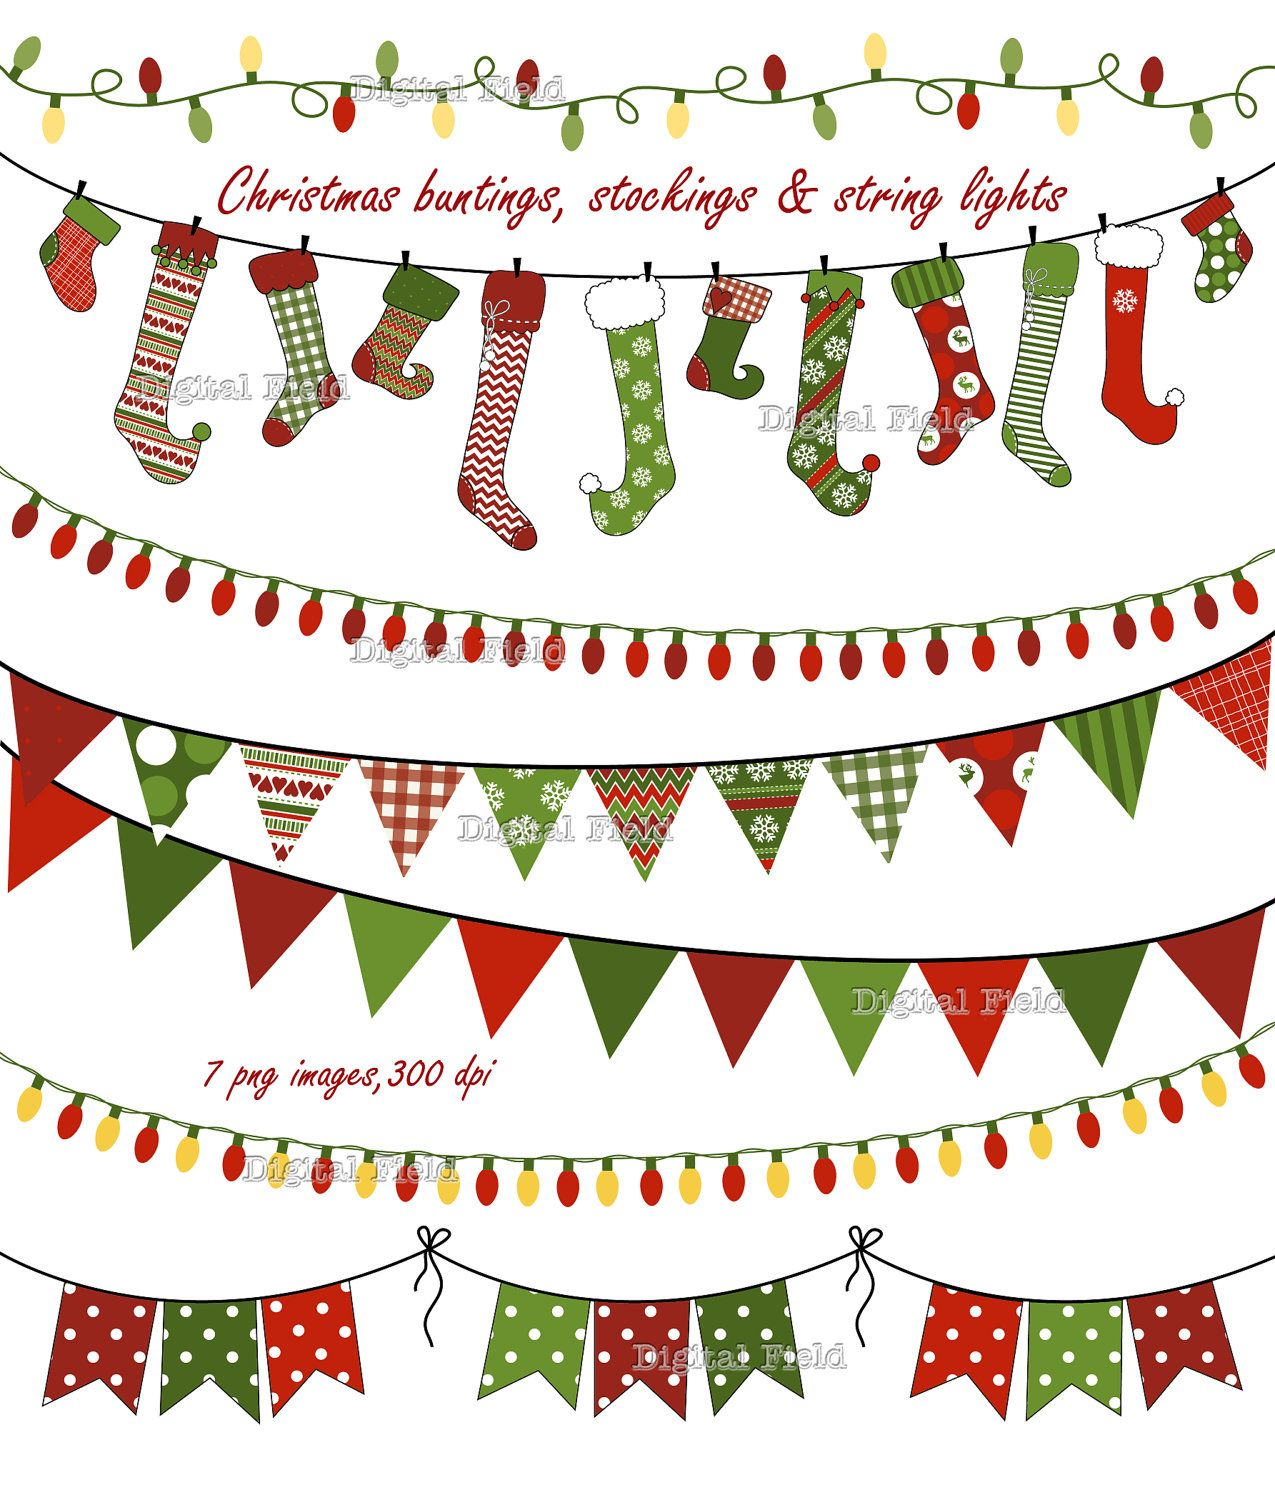 holiday party clip art borders border pinterest christmas rh pinterest com happy holidays clip art borders free holiday lights clip art border